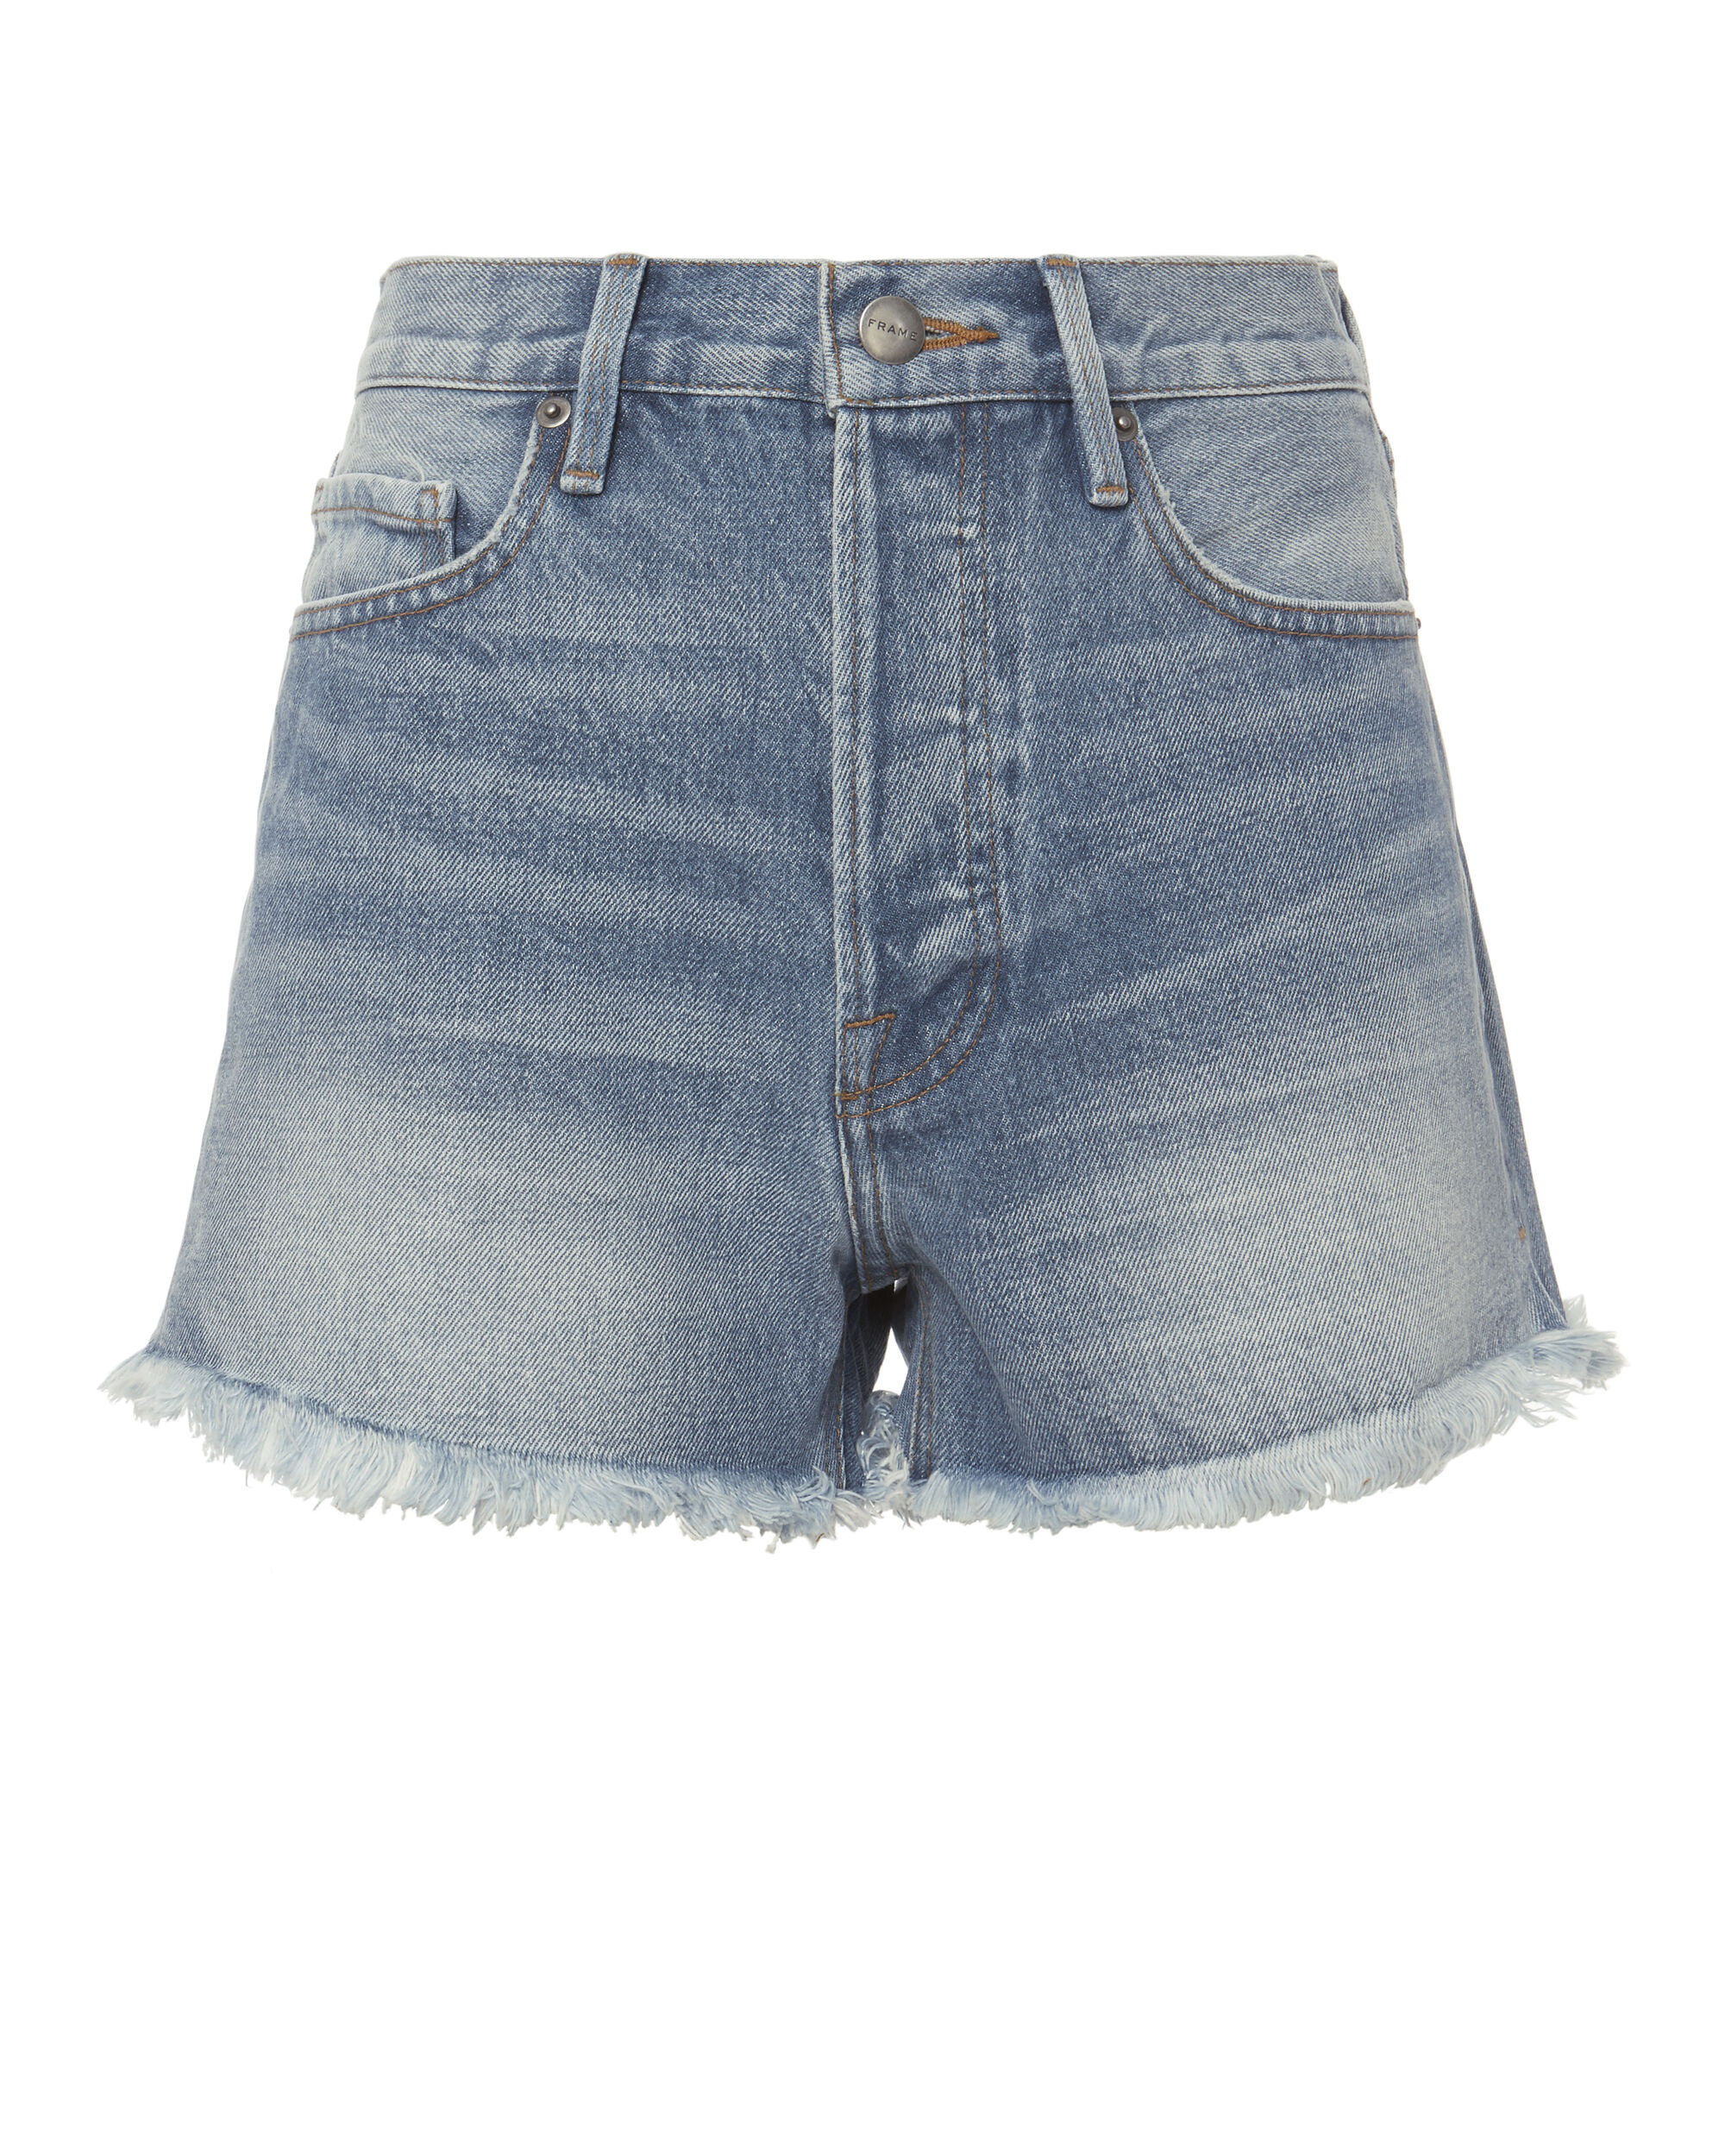 Le Original Light Blue Denim Shorts, DENIM-LT 3, hi-res